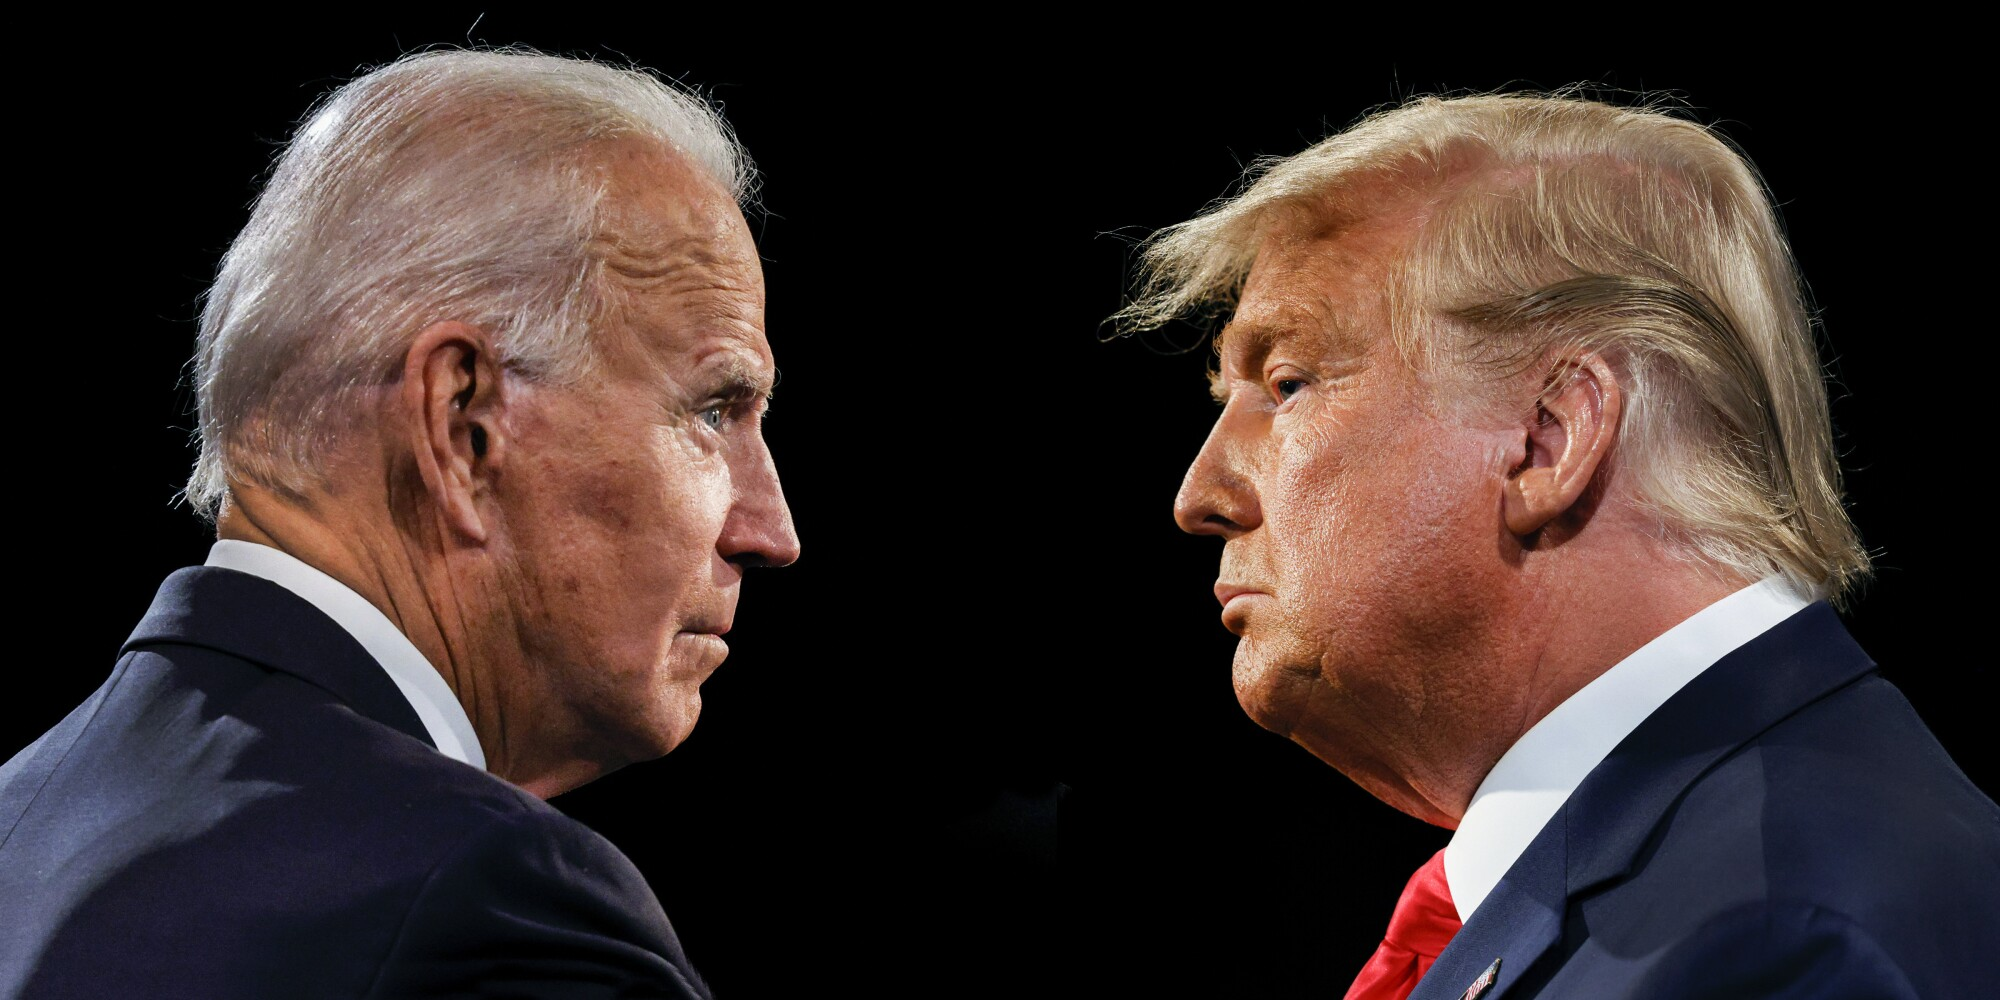 President Trump and Joe Biden